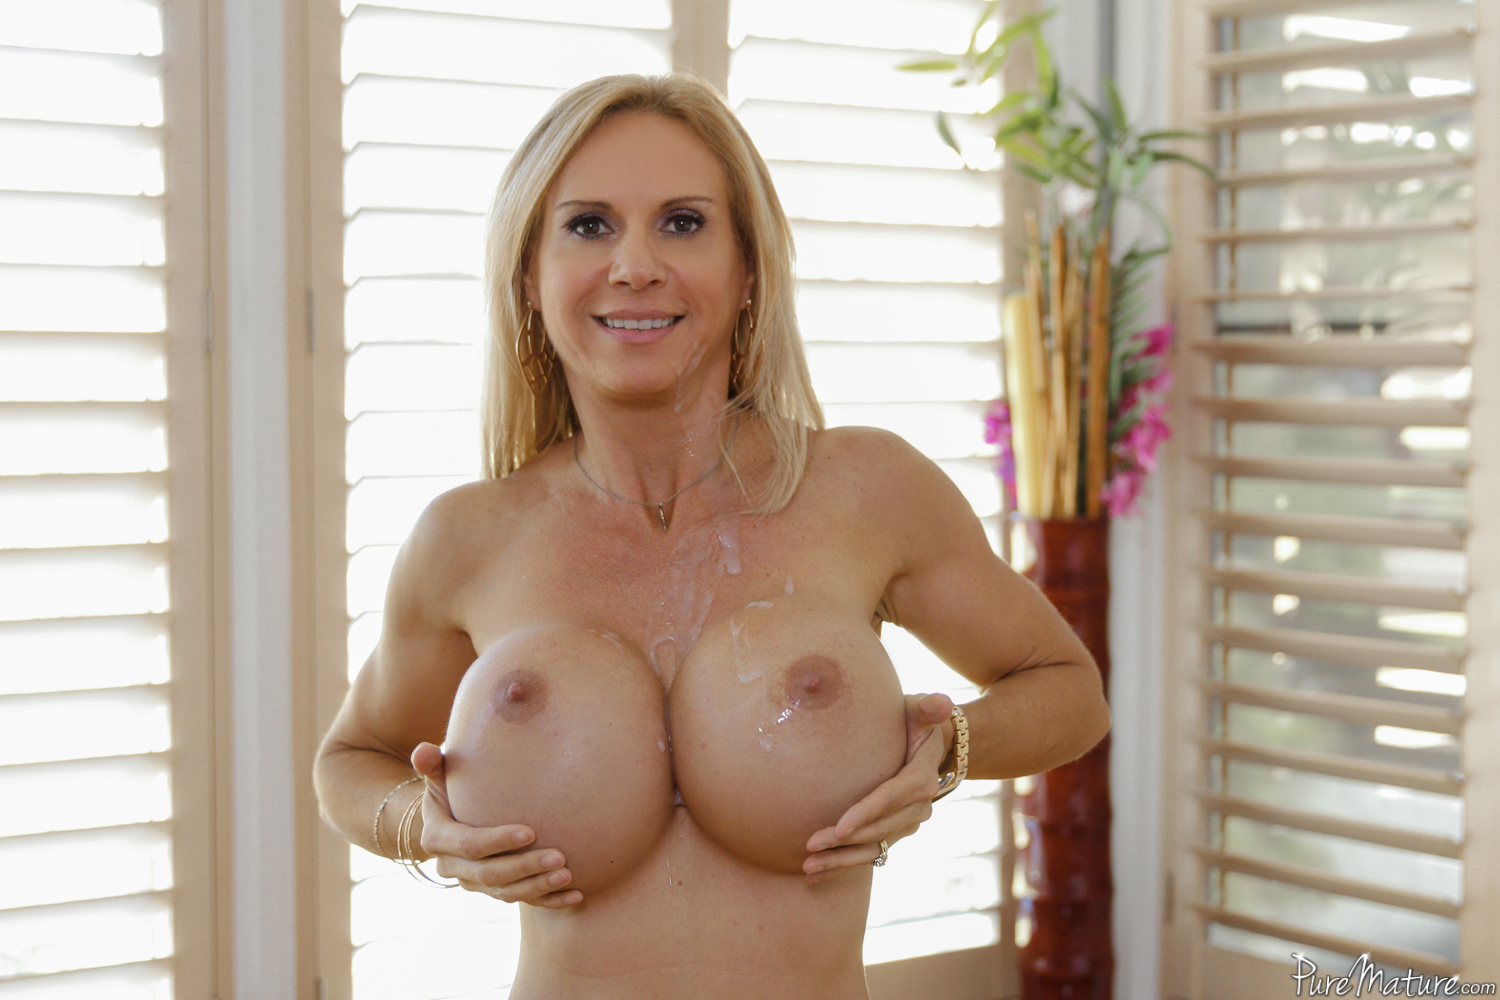 Puremature perfect 10 milf brandi love fucked from behind 3